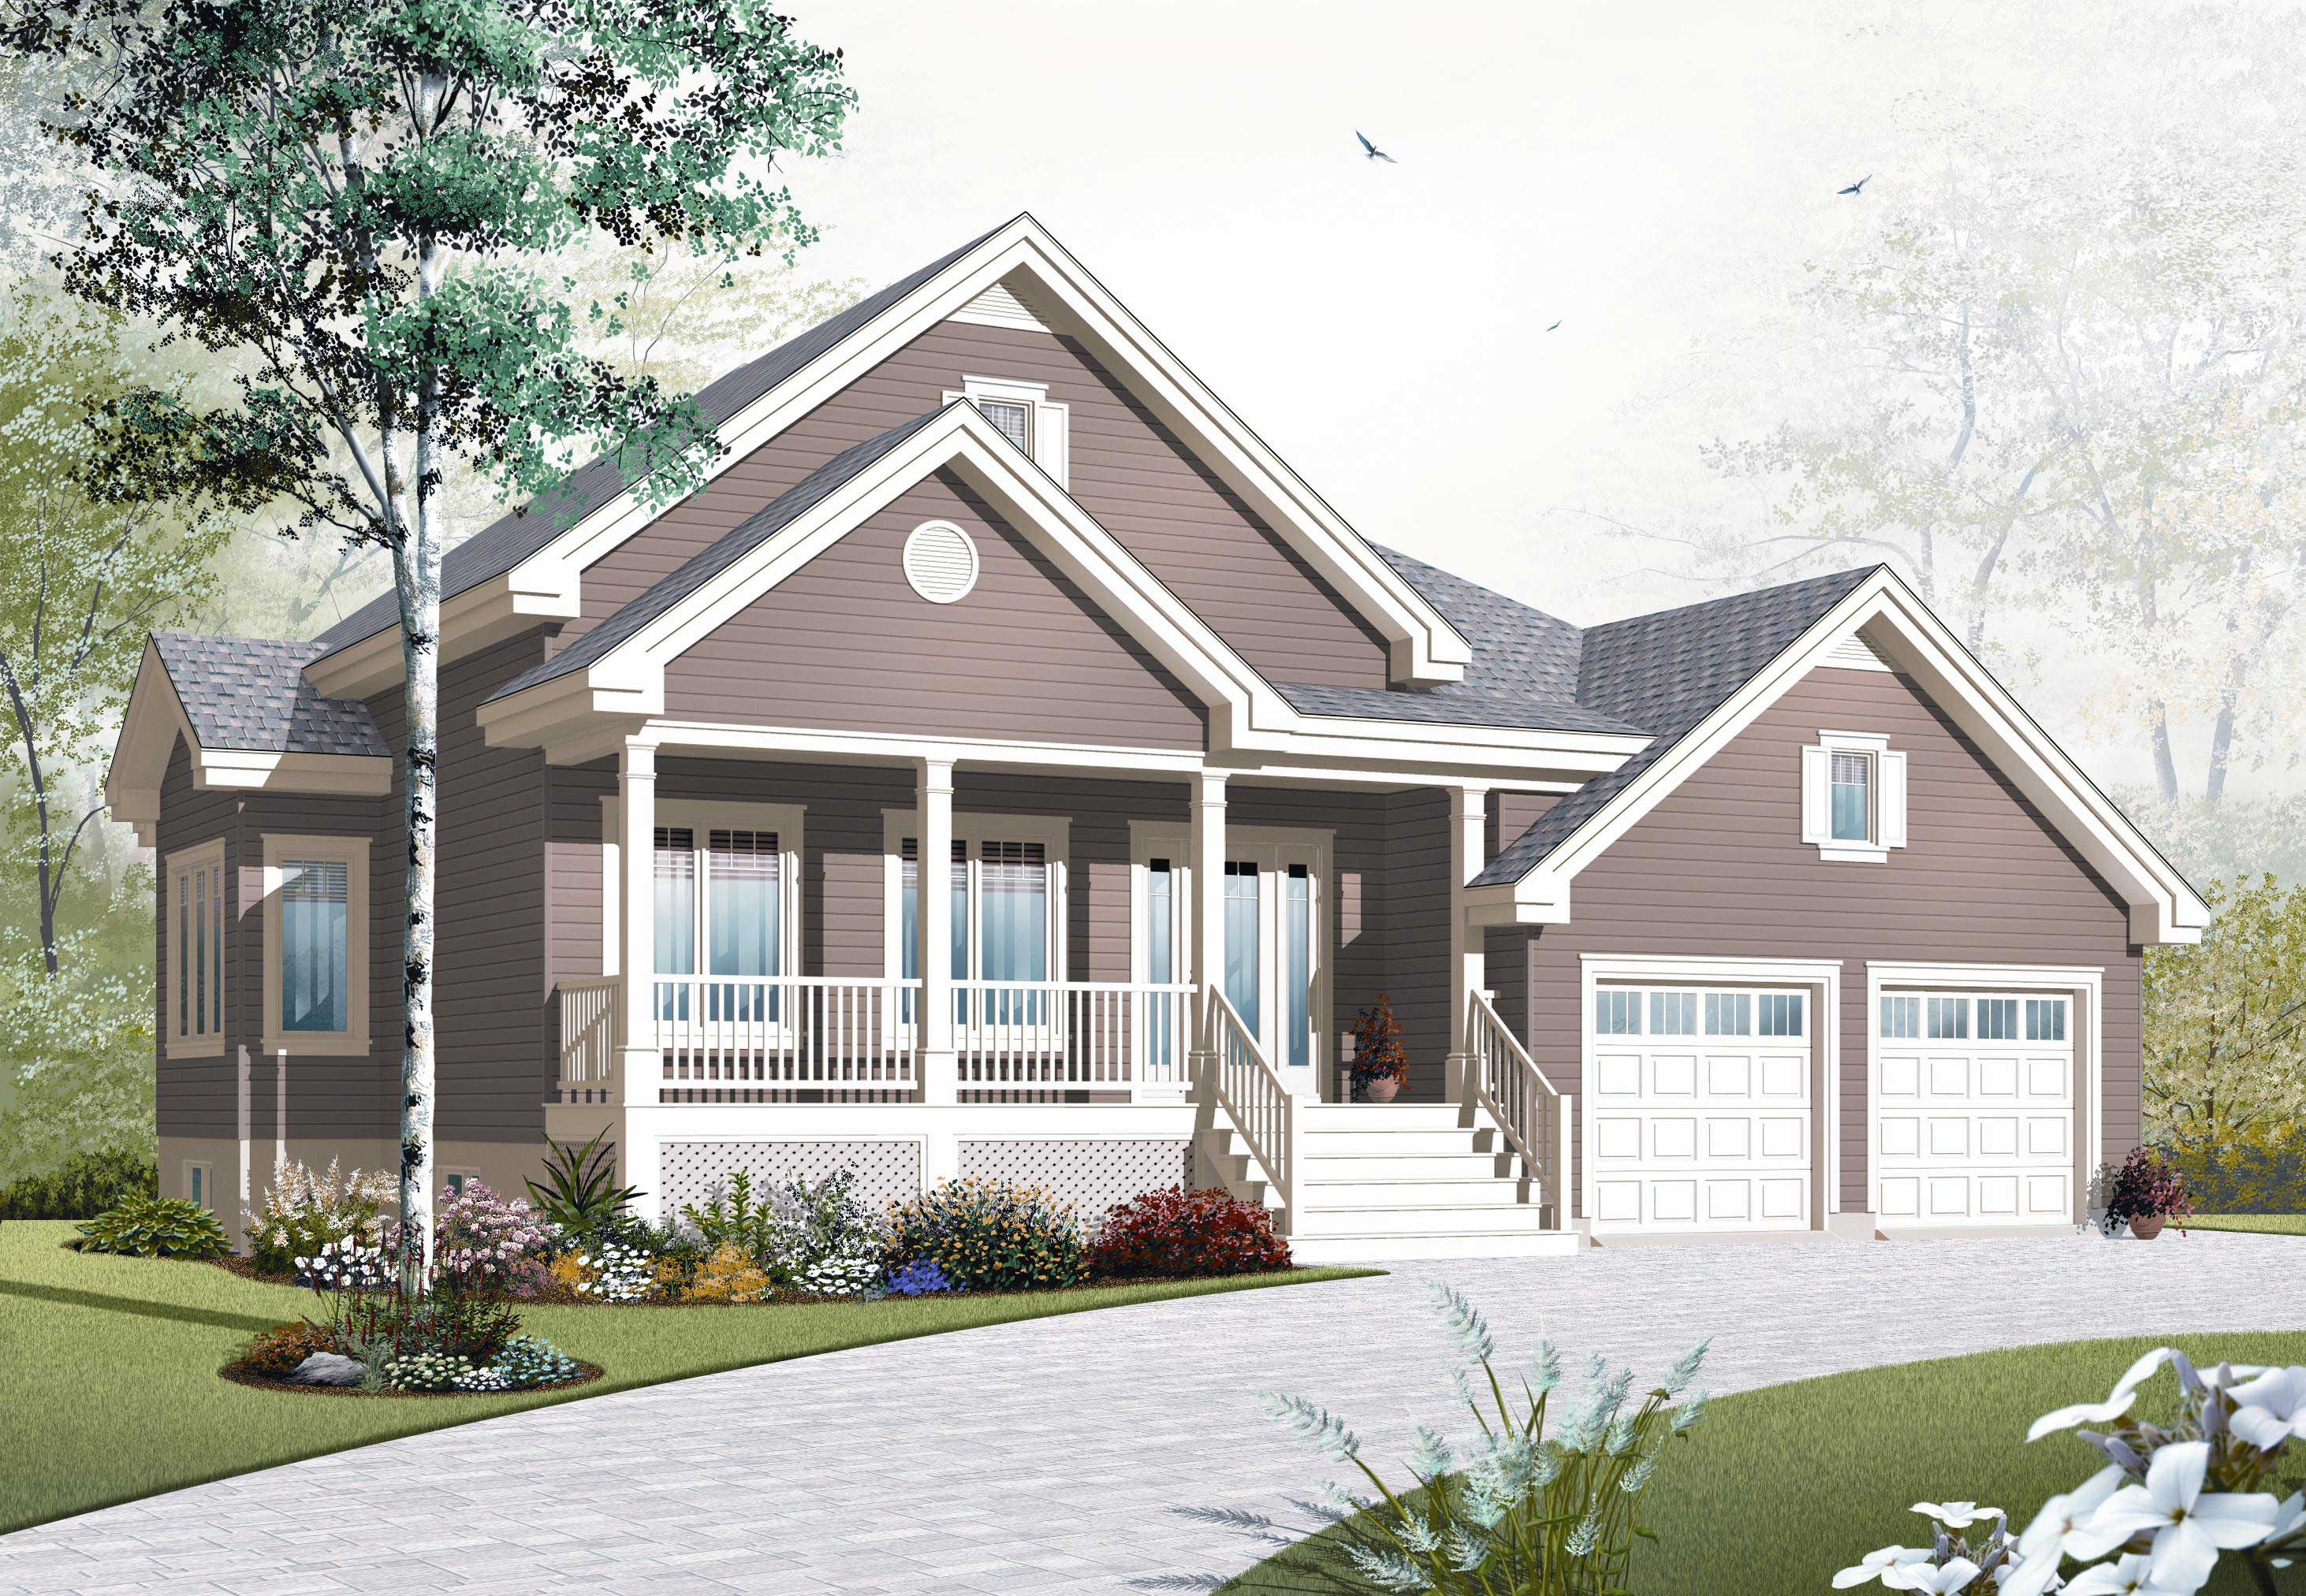 Country floor plan 2 bedrms 1 baths 1350 sq ft 126 for 1350 sq ft house plan